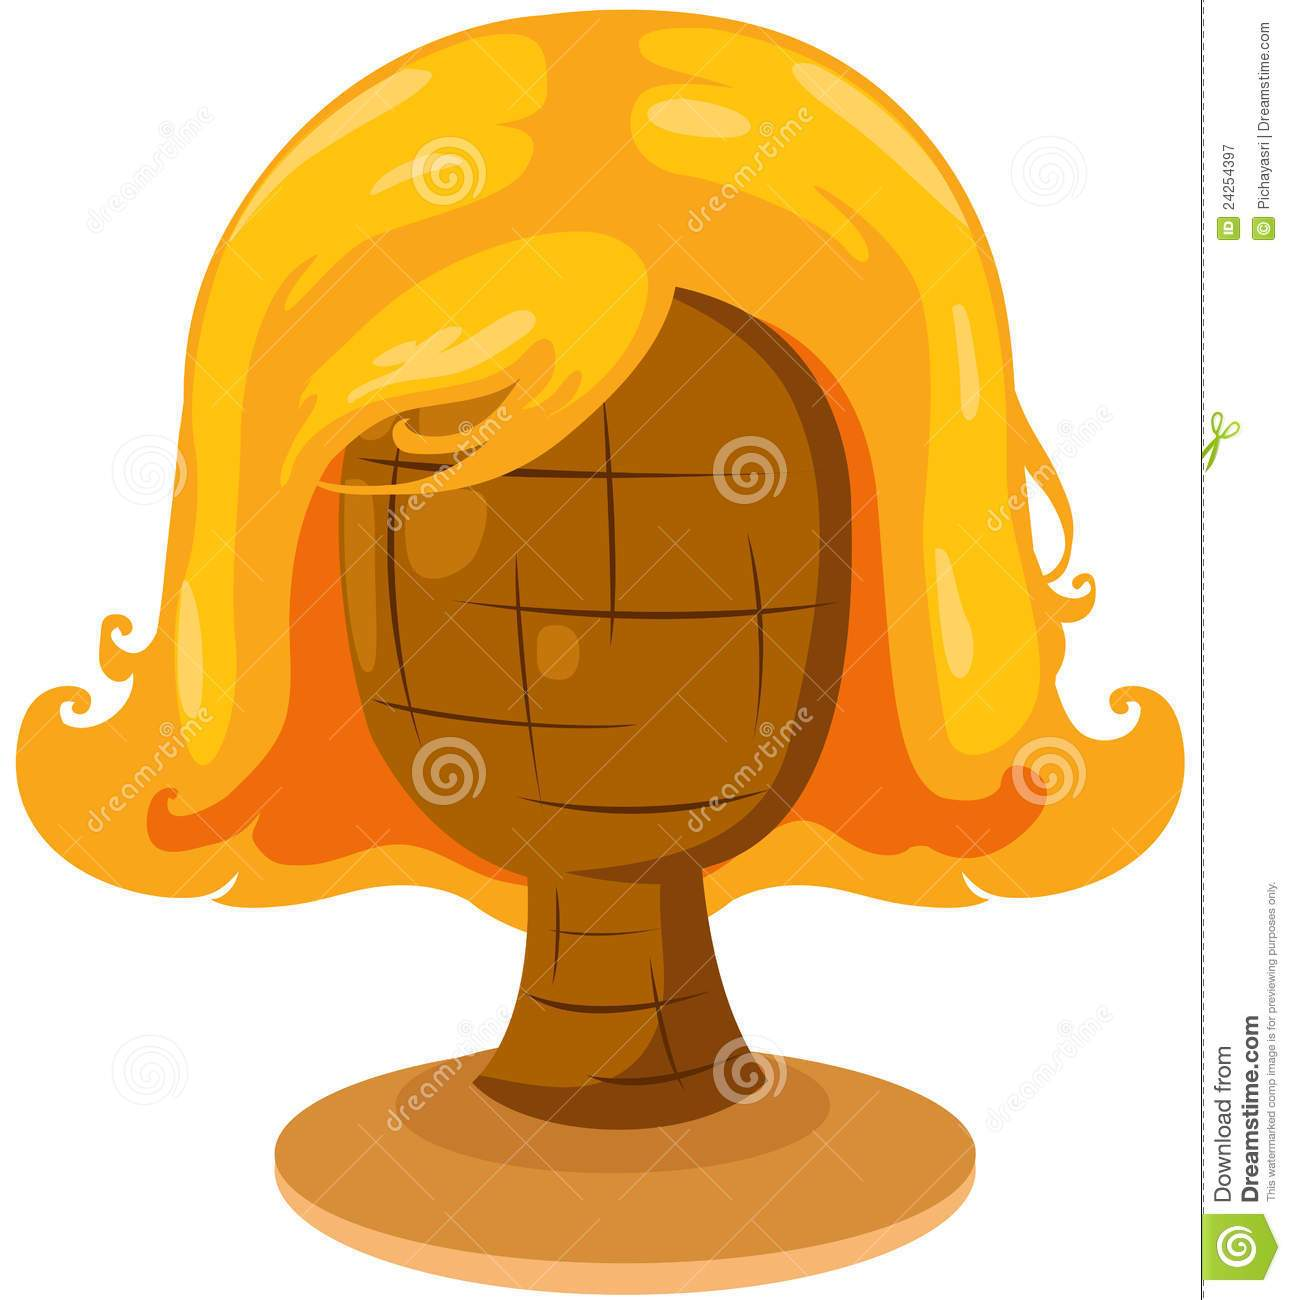 Clipart of wig clipart transparent library Wig clipart 2 » Clipart Portal clipart transparent library